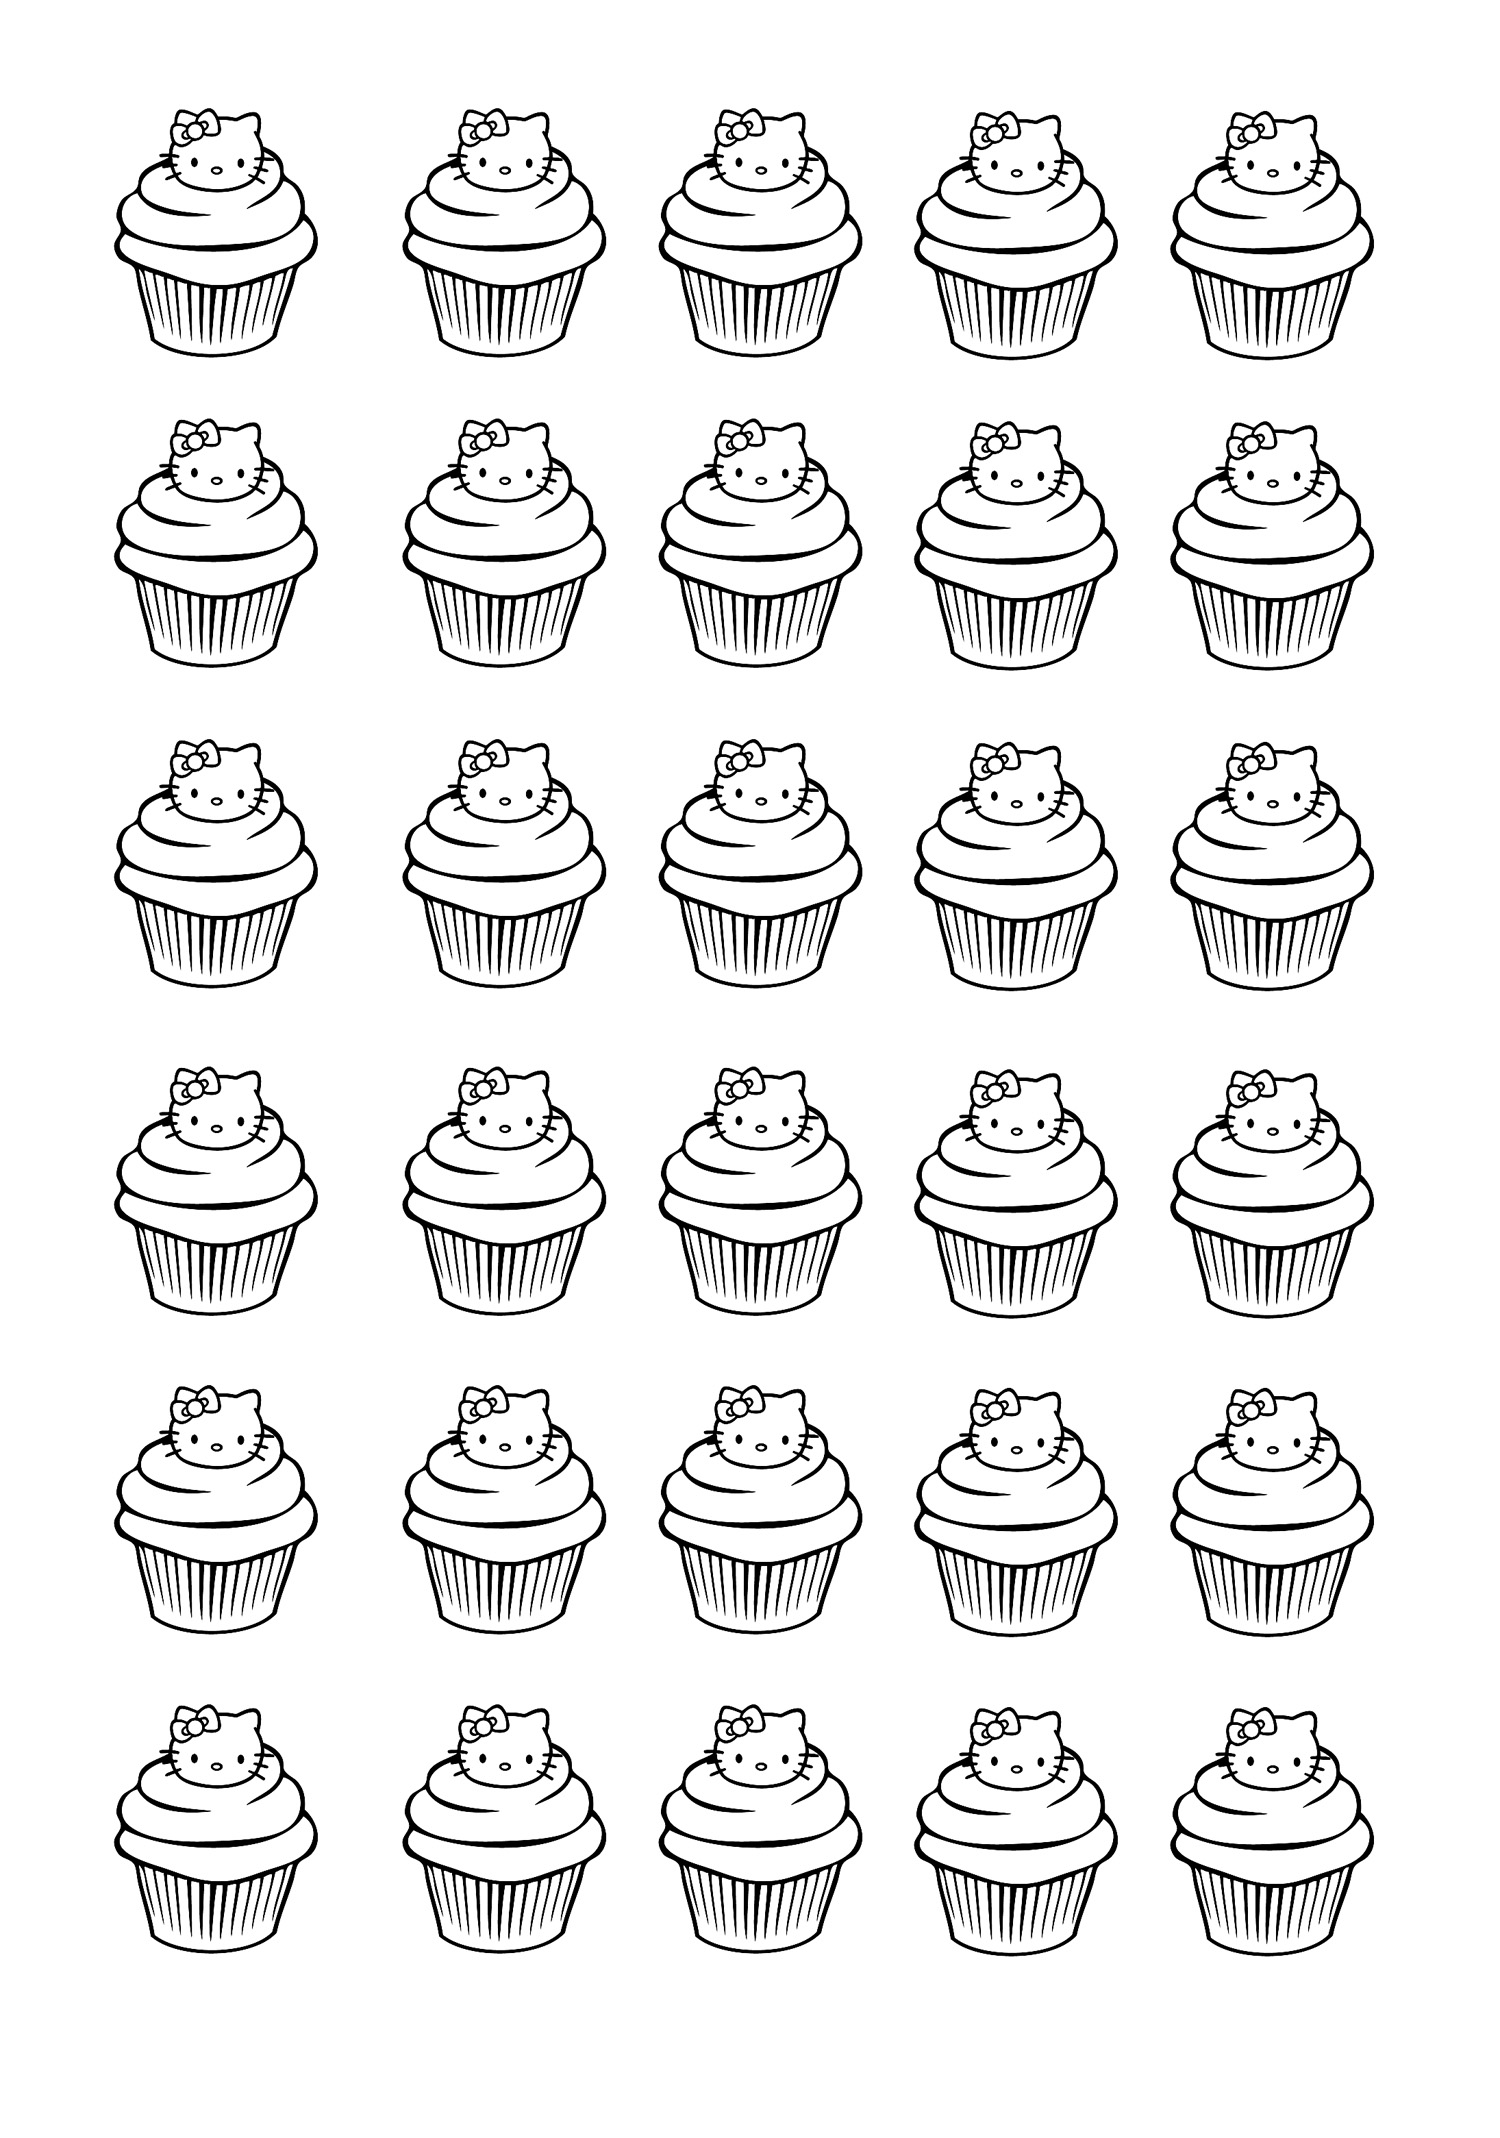 cupcakes hello kitty cup cakes coloring pages for adults